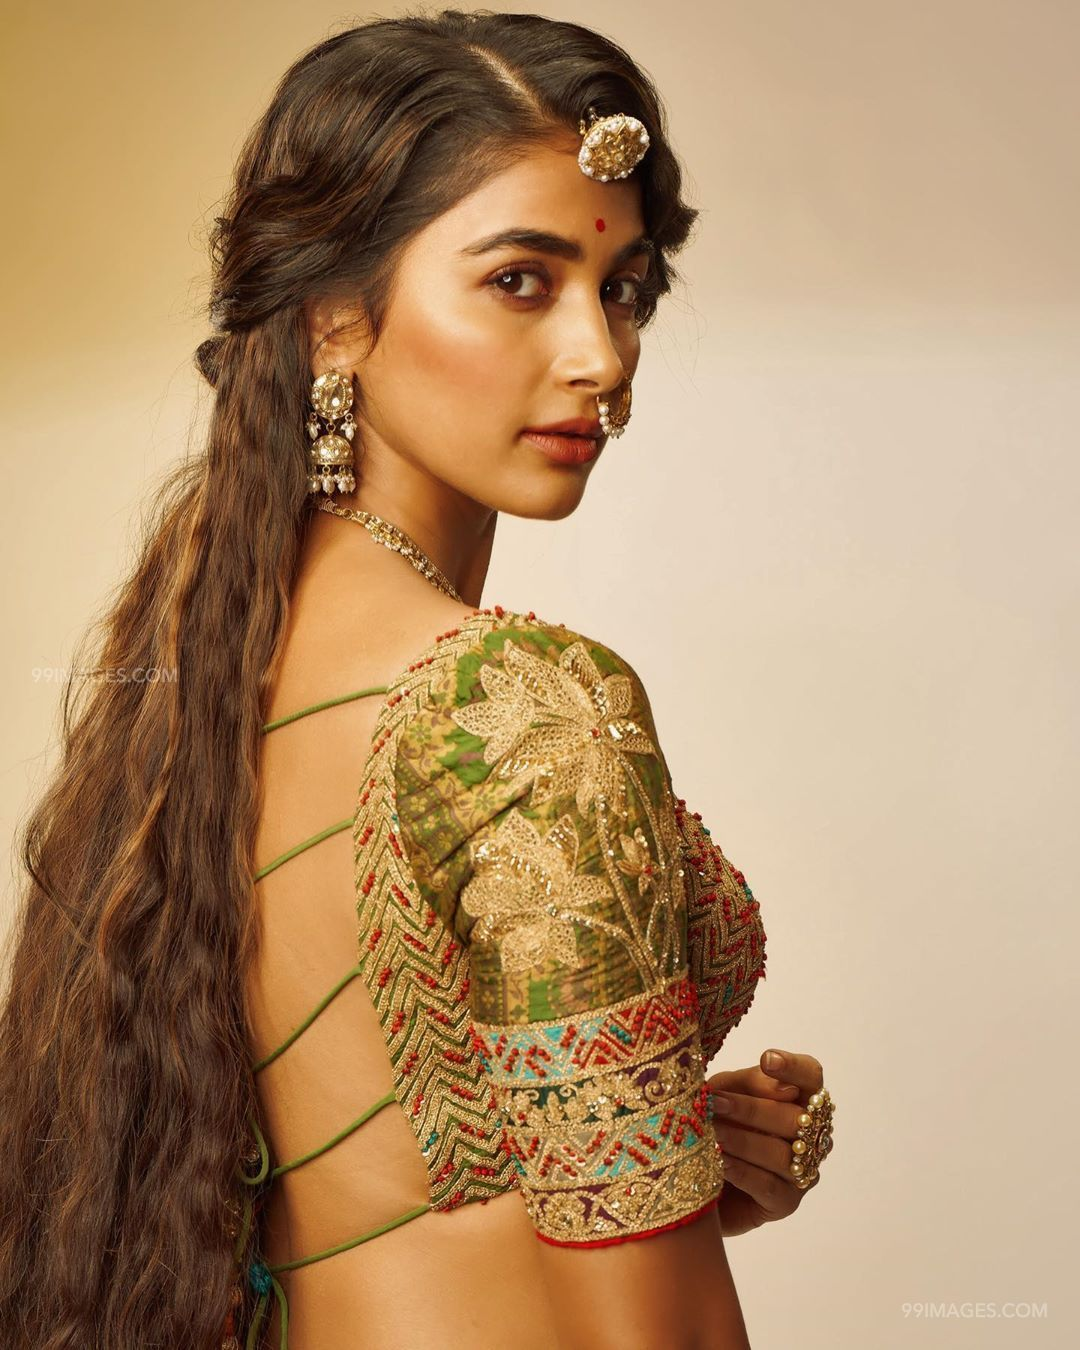 Pooja Hegde Hot Beautiful HD Photos / Wallpapers, WhatsApp DP (1080p) (47539) - Pooja Hegde